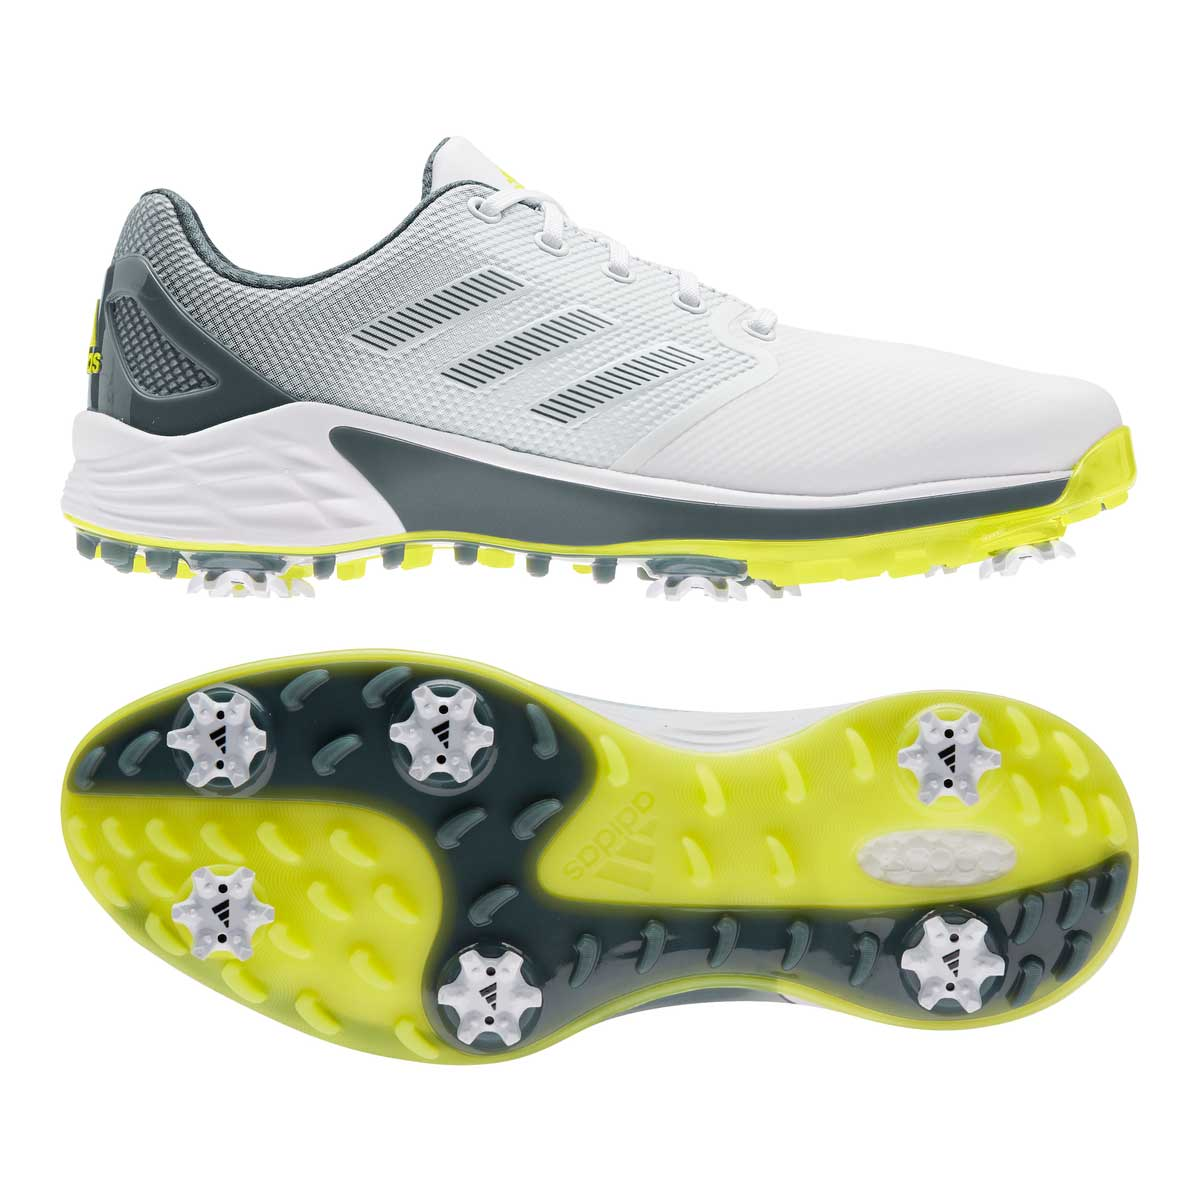 Adidas Men's ZG21 White/Acid Yellow Golf Shoe